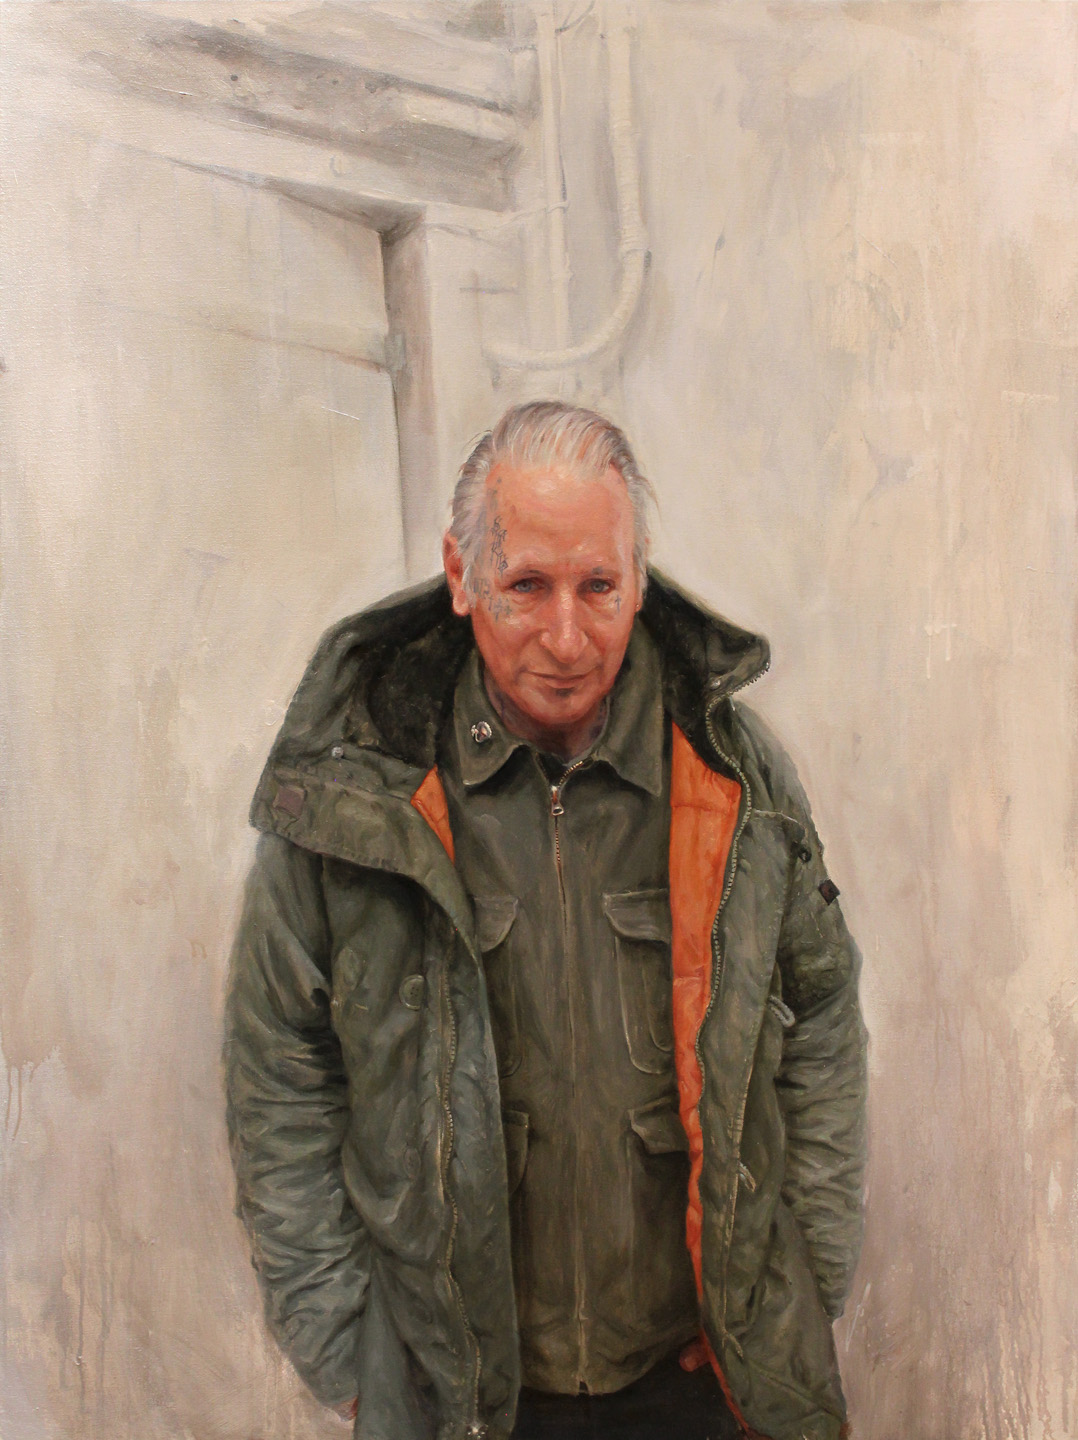 "'Portrait of the Artist, Freddy Corbin', oil on canvas, 48"" x 36"", 2016, Collection of Tin-tin"